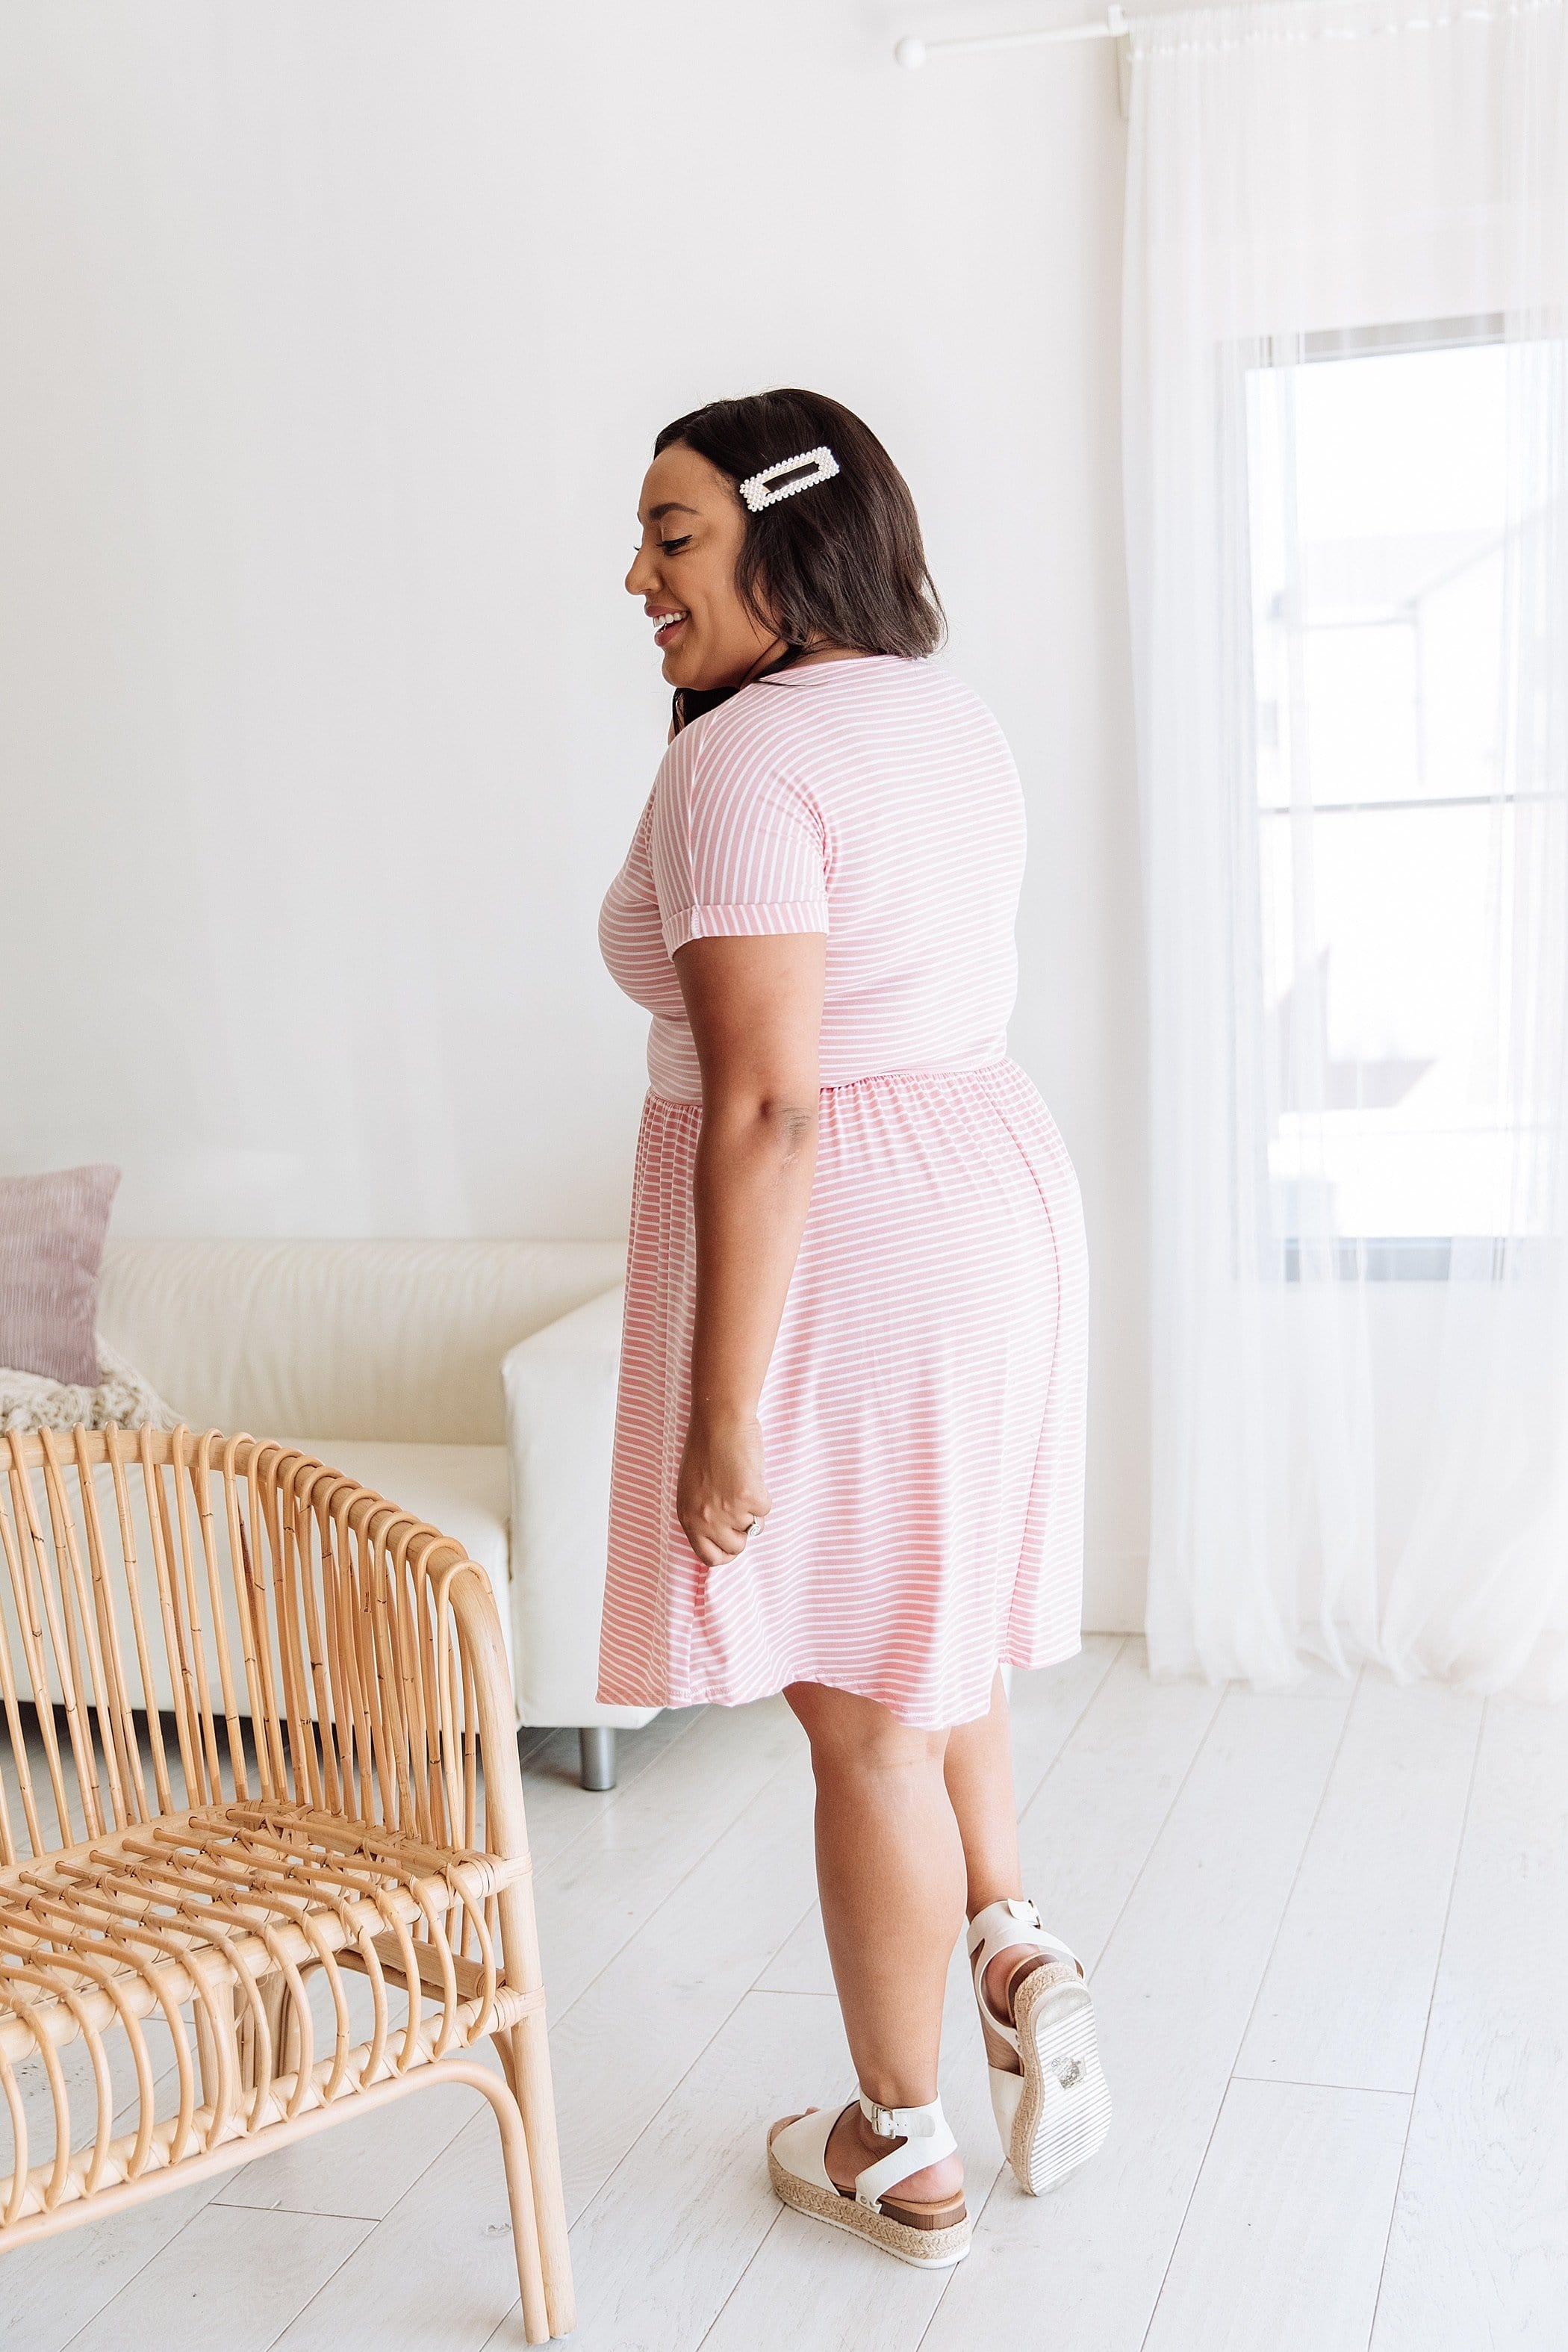 The Harper Striped Dress in Pink